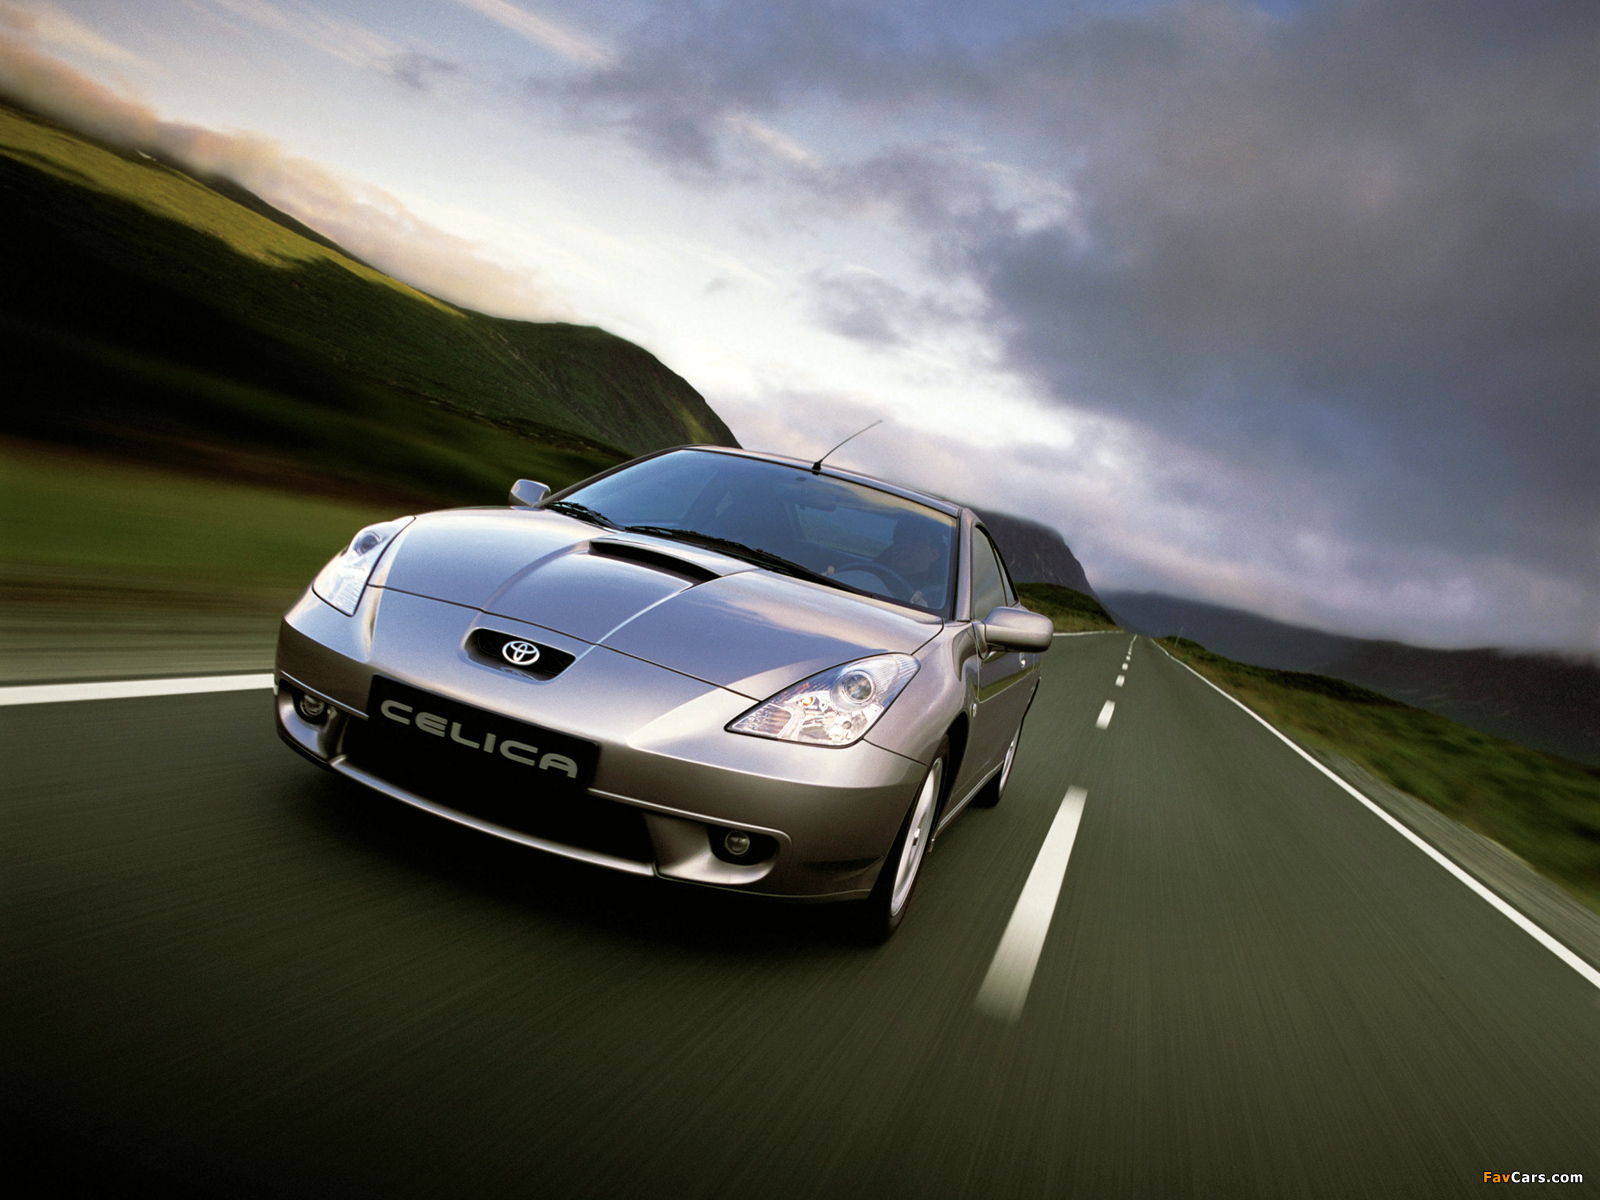 wwwhigh definition wallpapercomphototoyota celica wallpaper9html 1600x1200